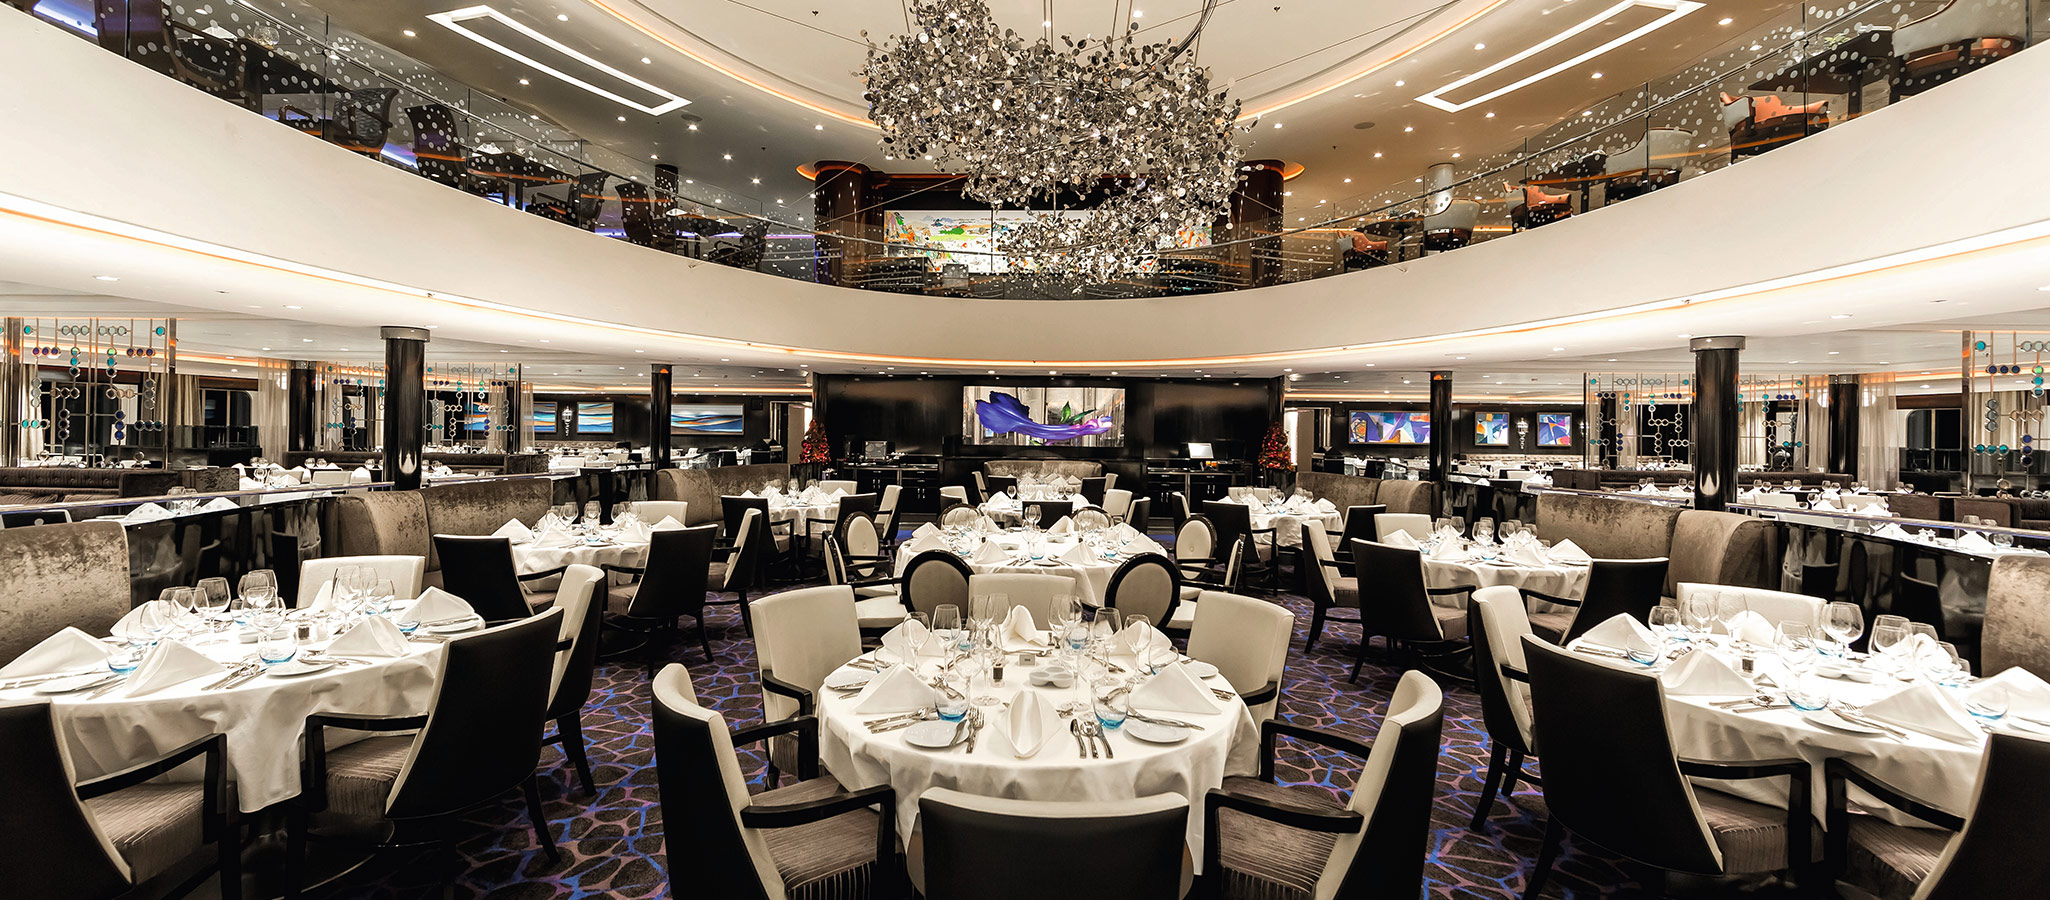 The restaurants of the cruise ships seat around 1,200 guests at one time. Ideal for events with single-room occupation.